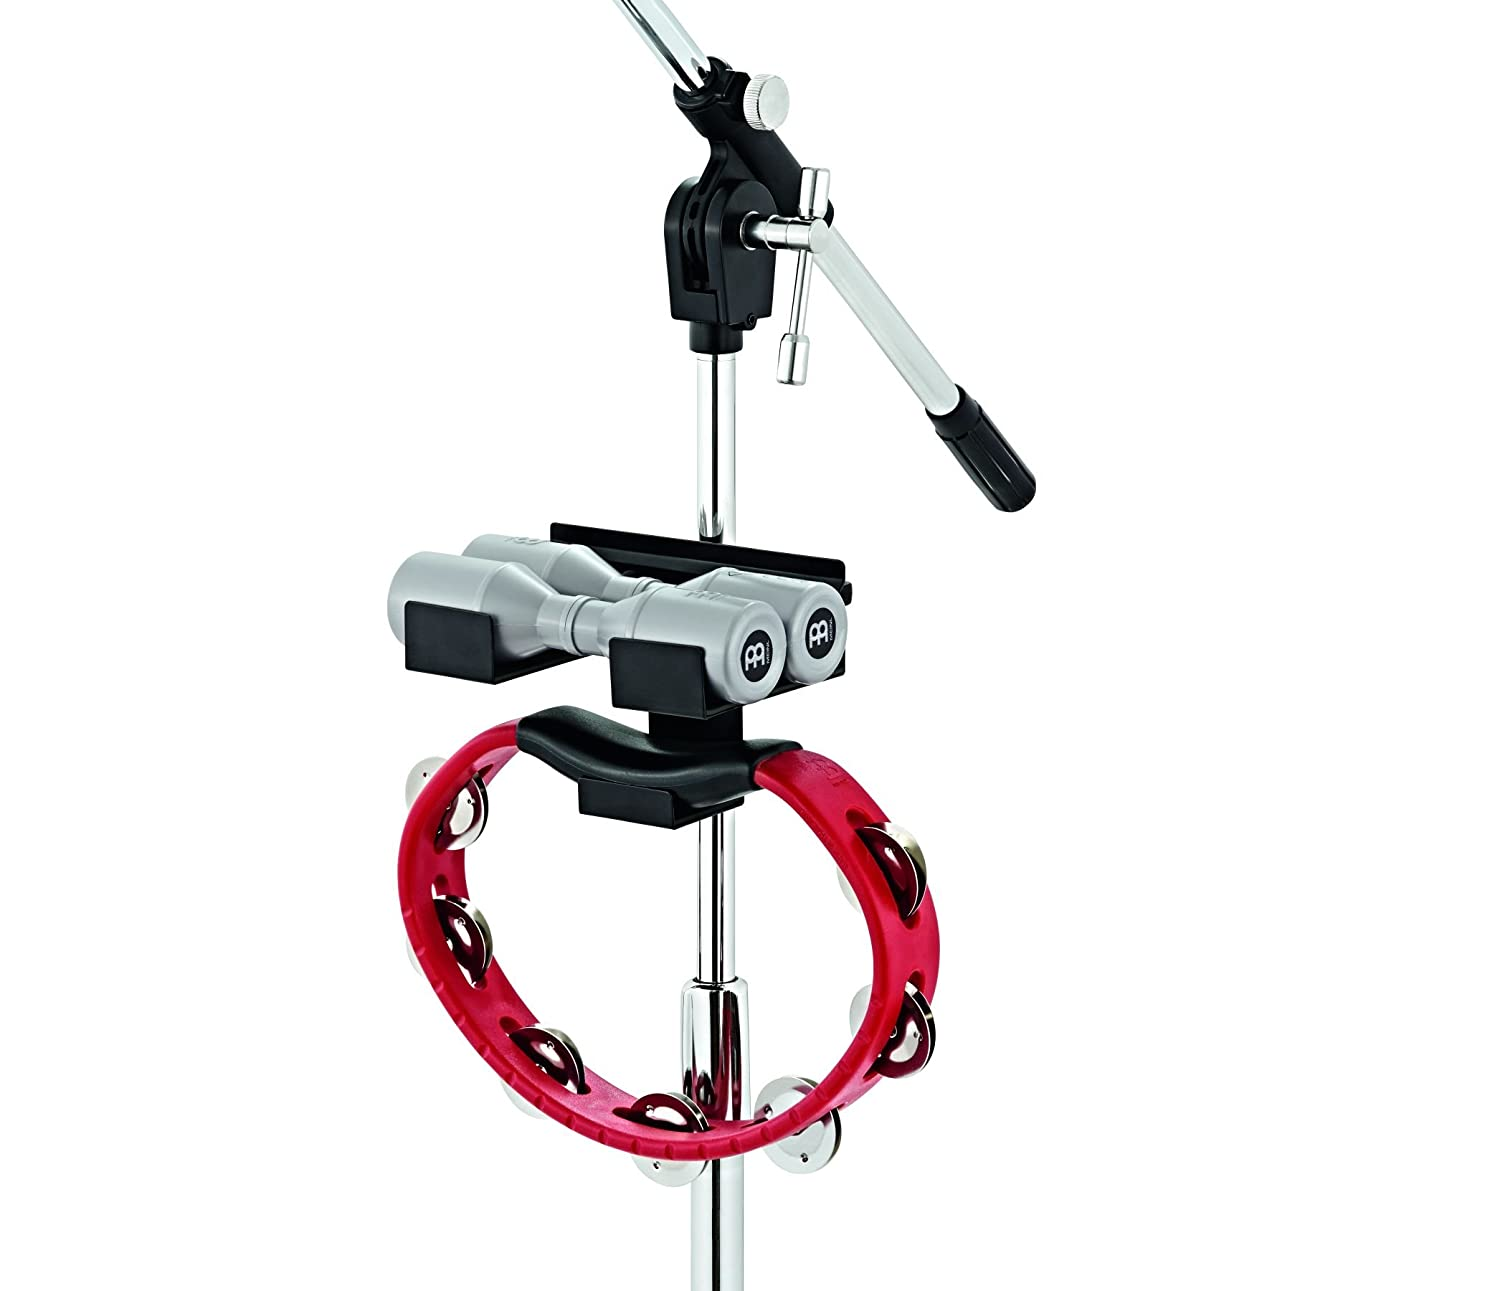 Meinl Percussion MC-SHTA Microphone Stand Percussion Accessory Mount for Tambourines and Shakers Meinl USA L.C.